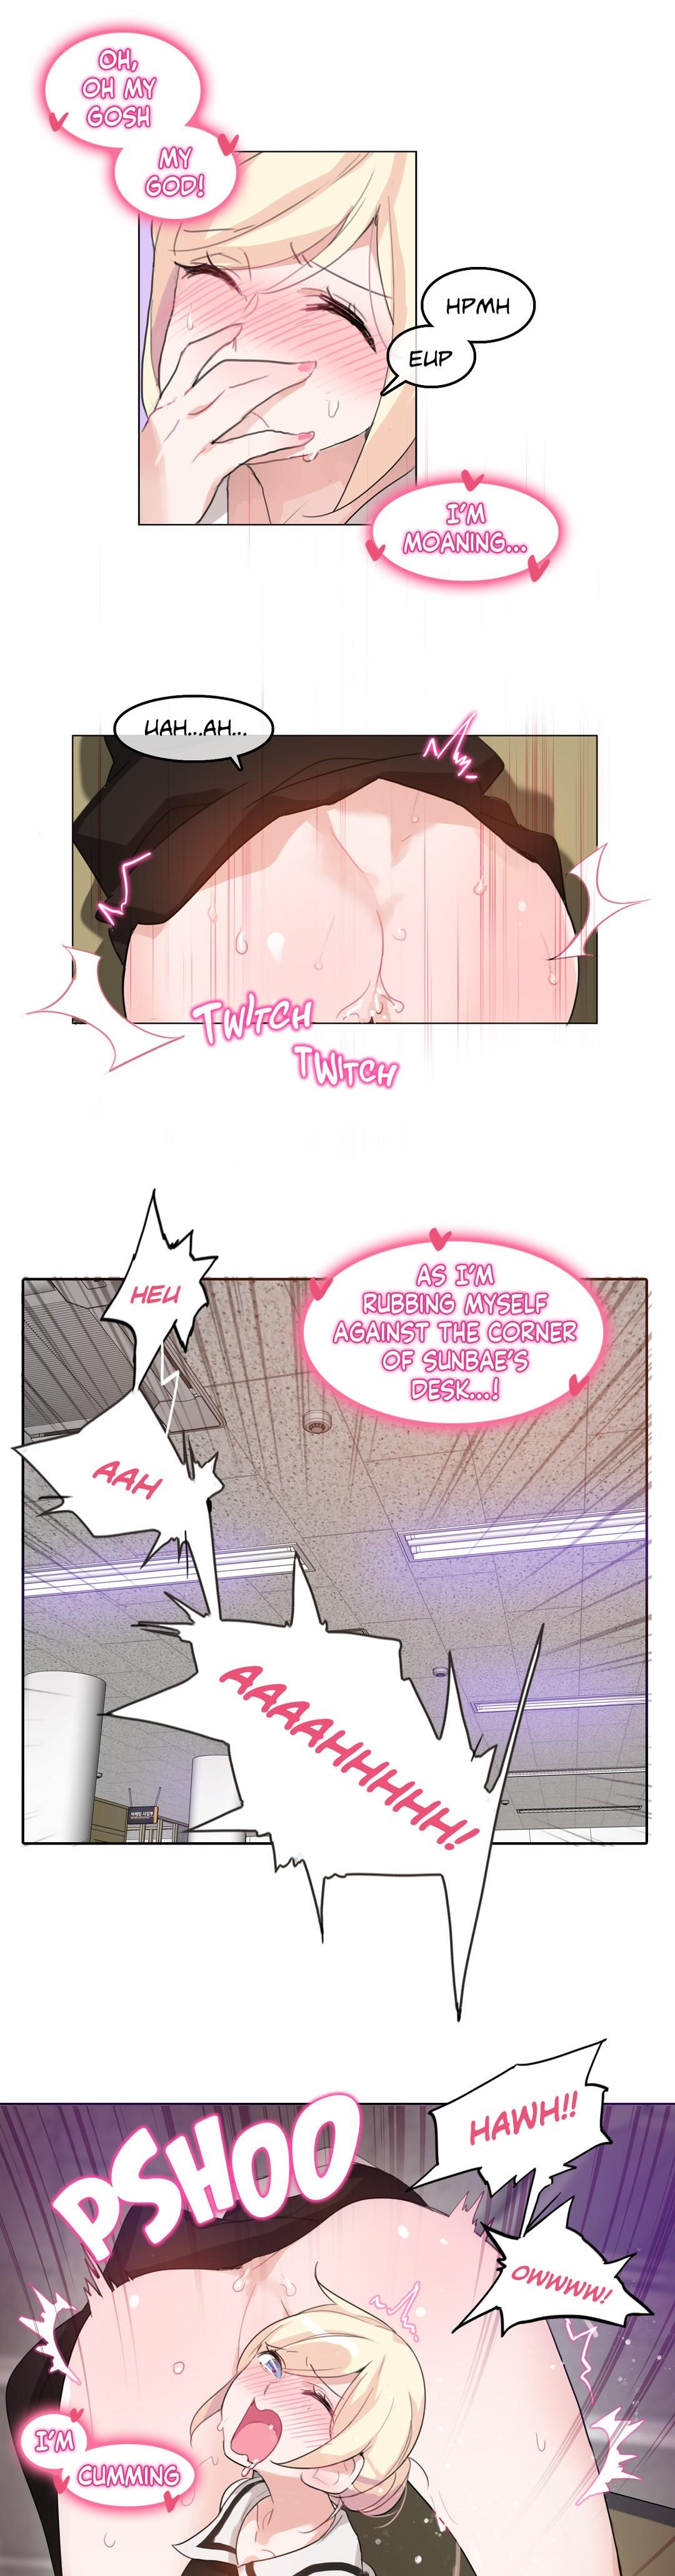 A Pervert's Daily Life Ch. 1-34 289